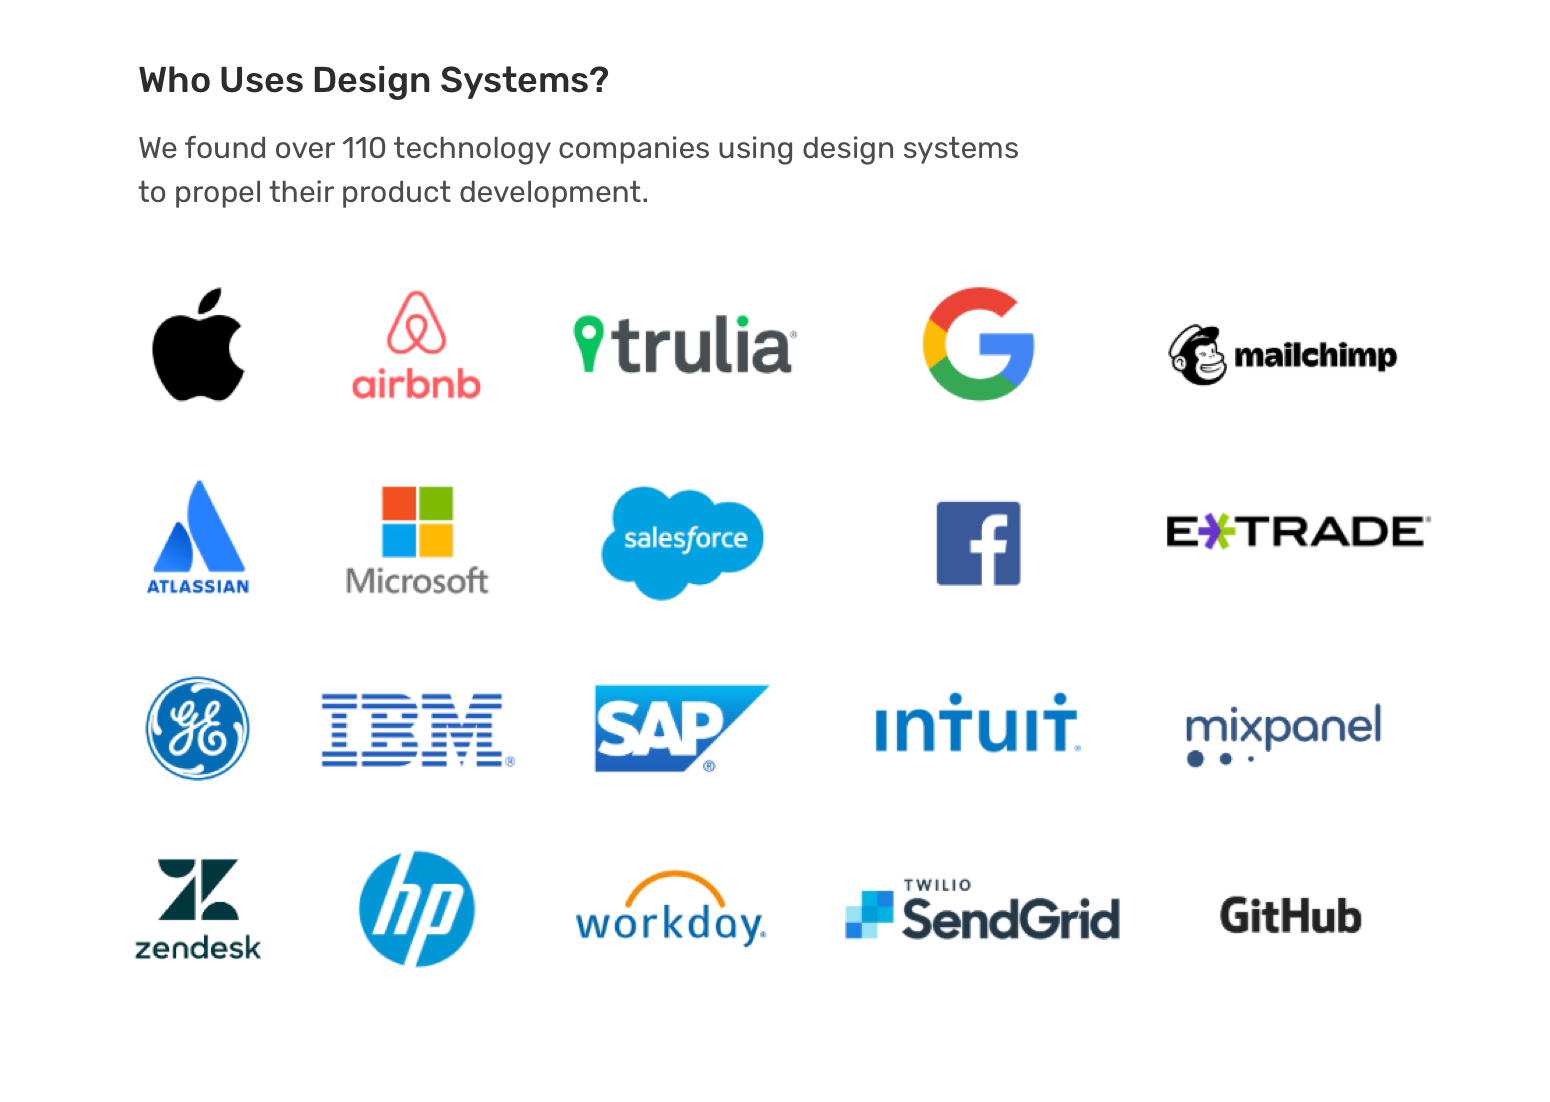 Who Uses Design Systems?